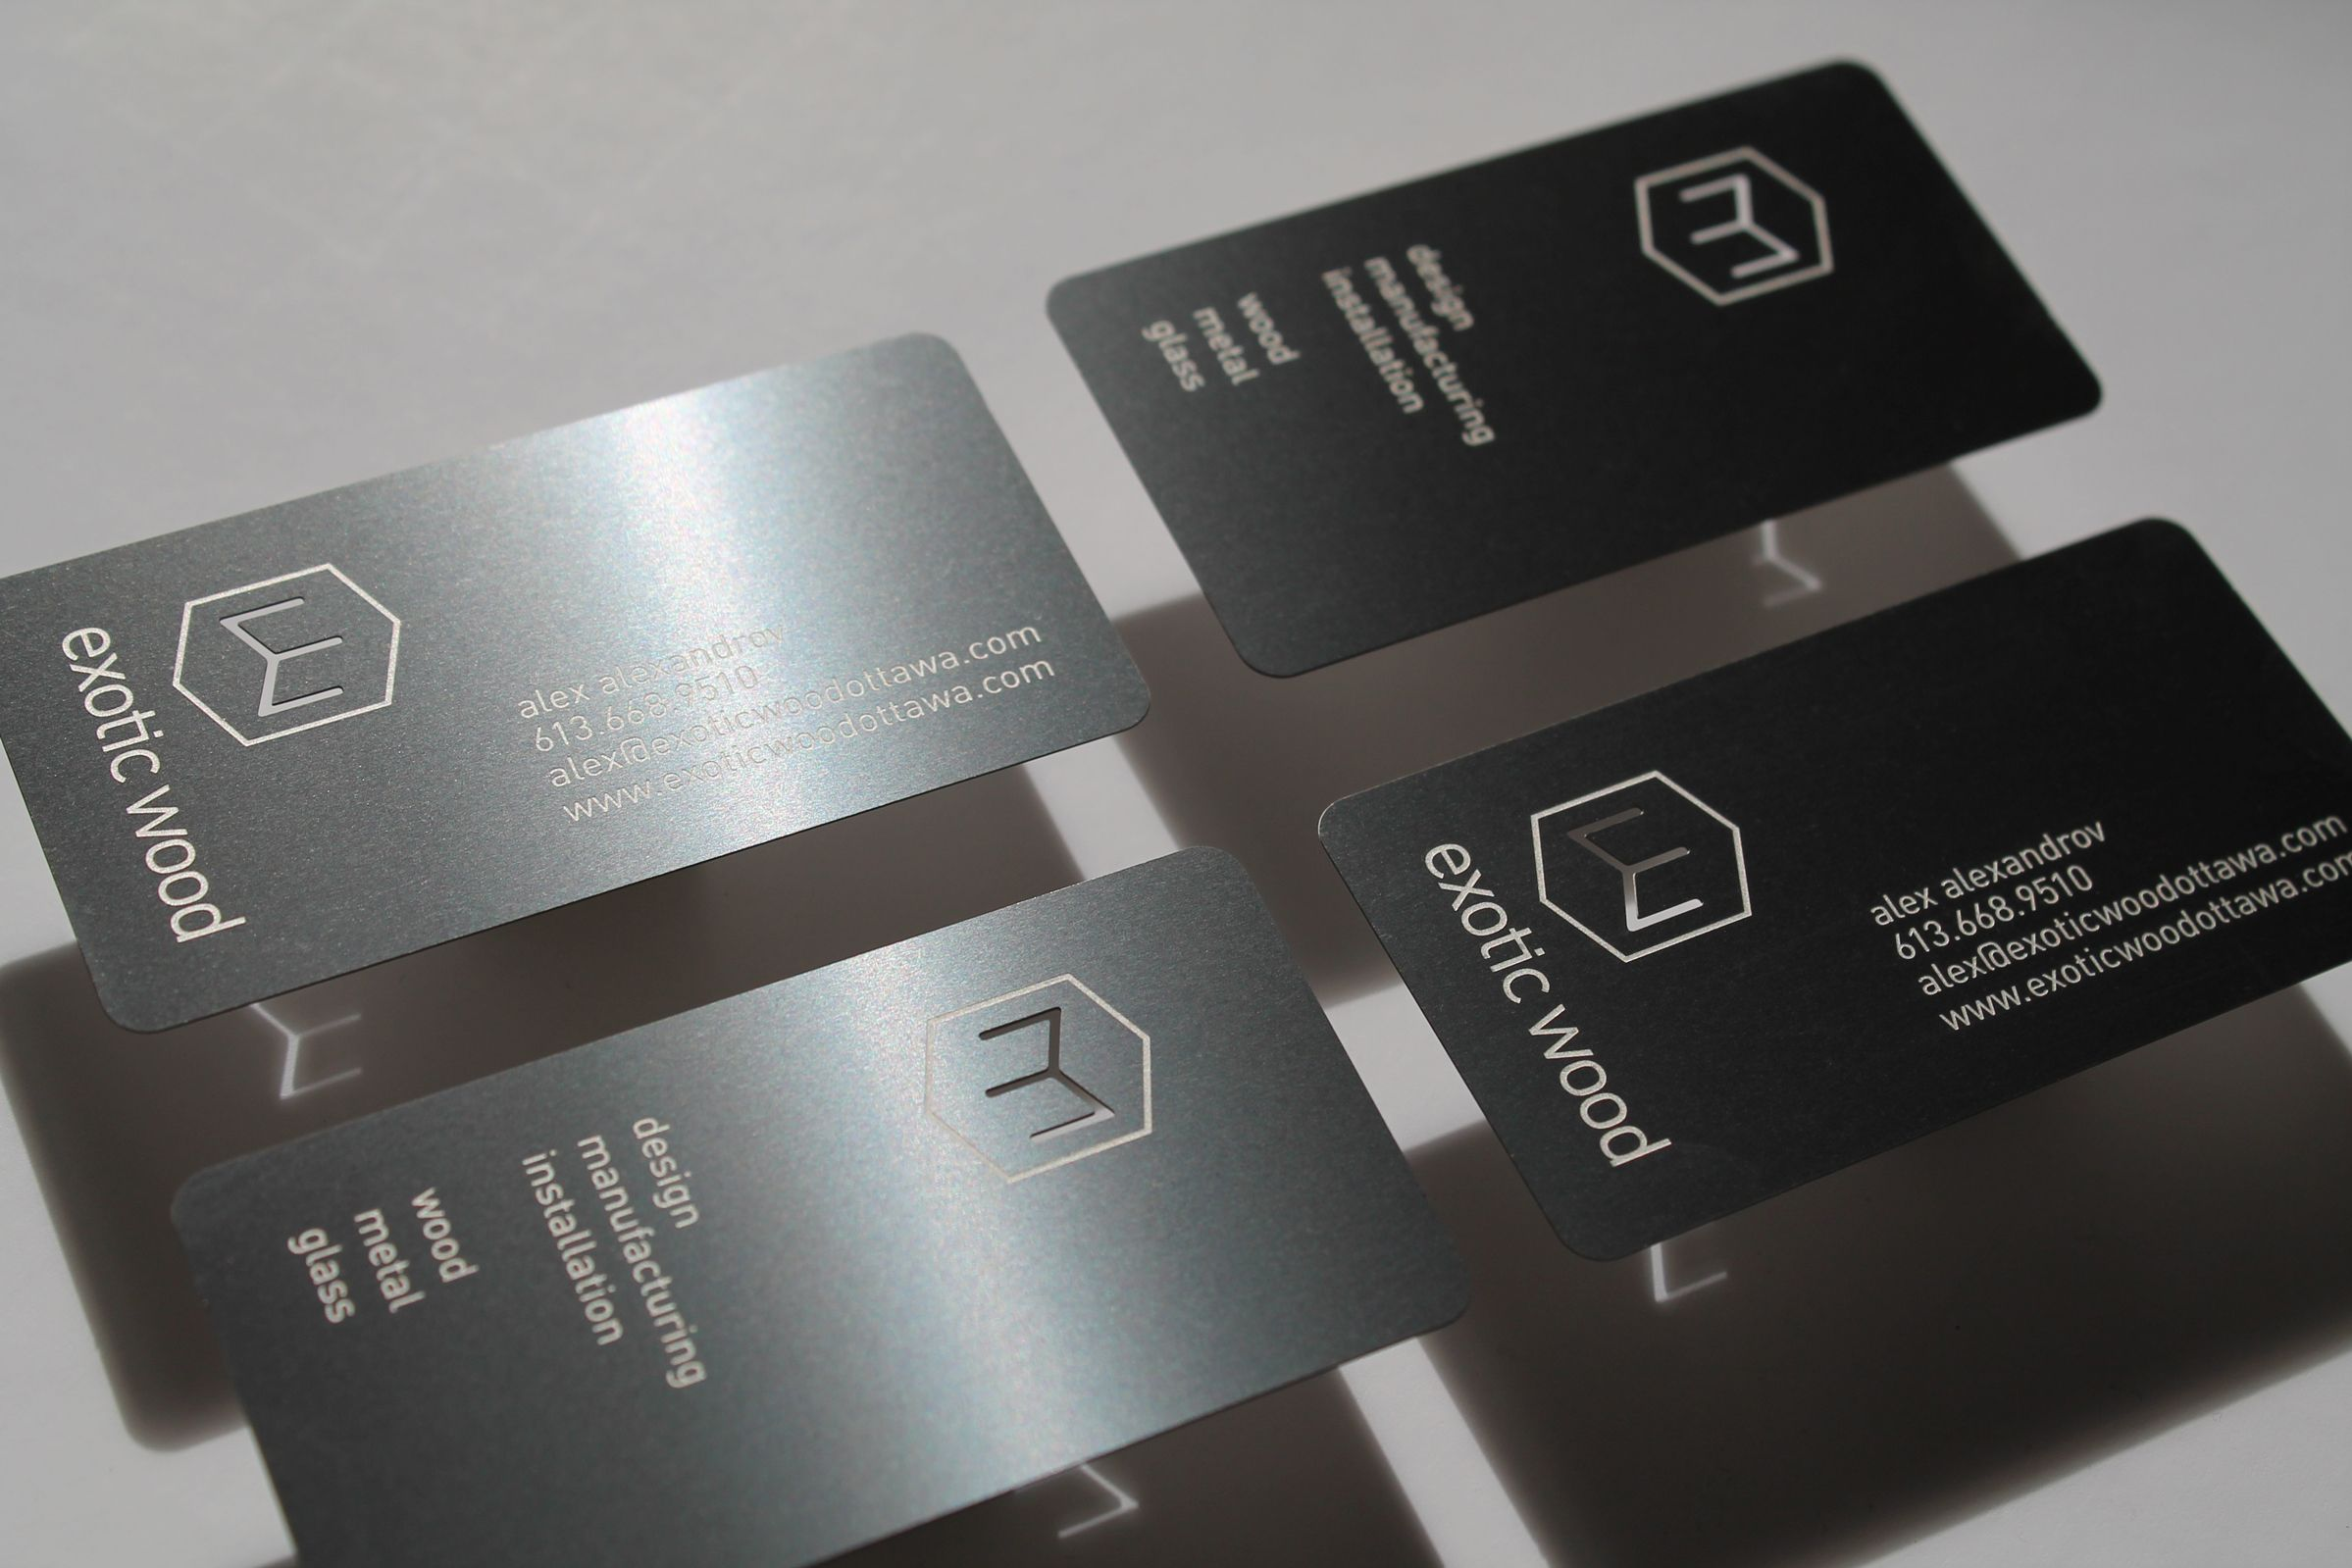 Metal business card for Exotic Wood, an Ottawa furniture manufacturer, by Graphic Design Studio idApostle